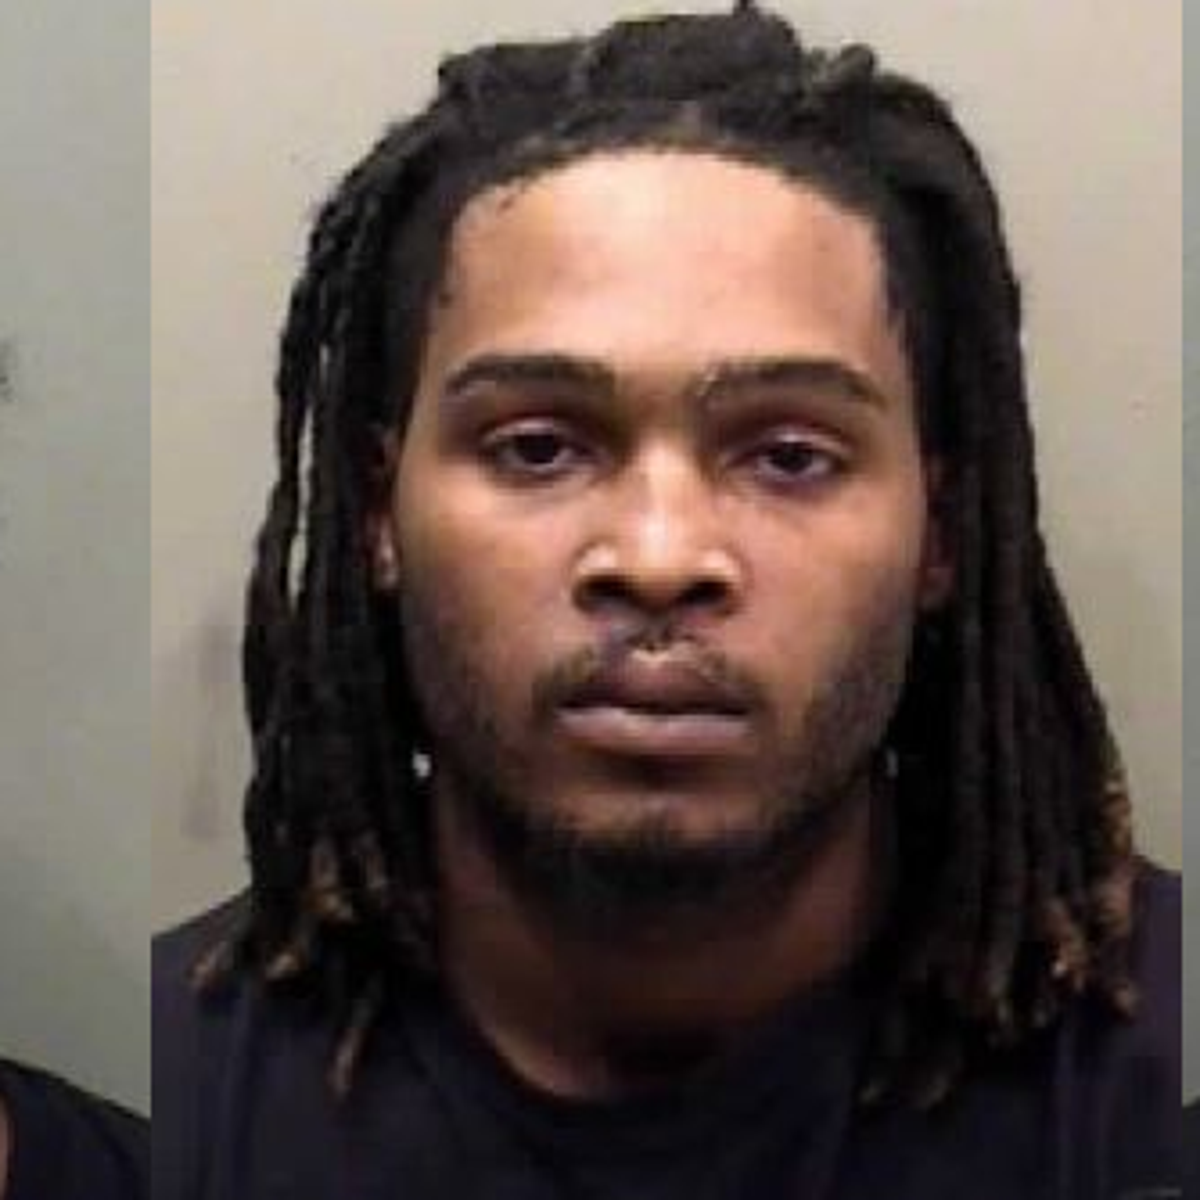 Adria Martinez Verbon Porno 3 bloomington-normal men charged in federal sex trafficking